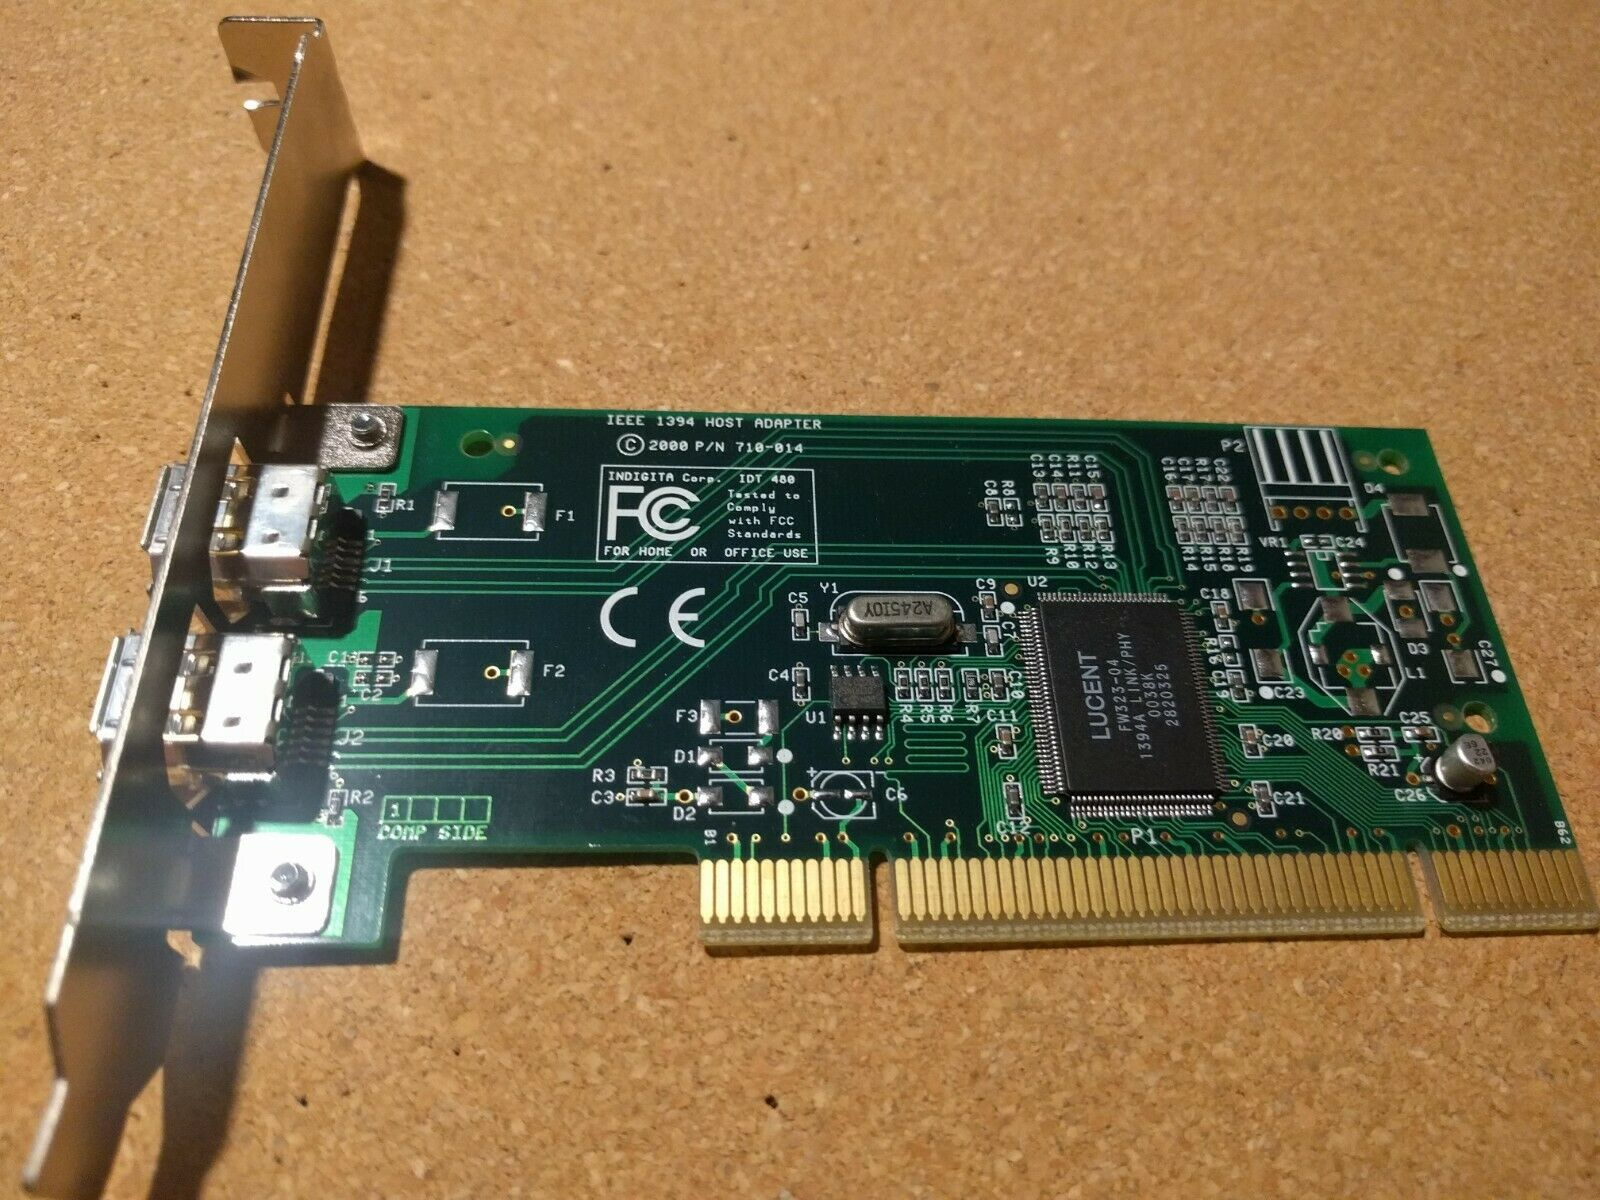 Host Adapter IEEE 1394 710-014 IDT 481 PCI Card Used